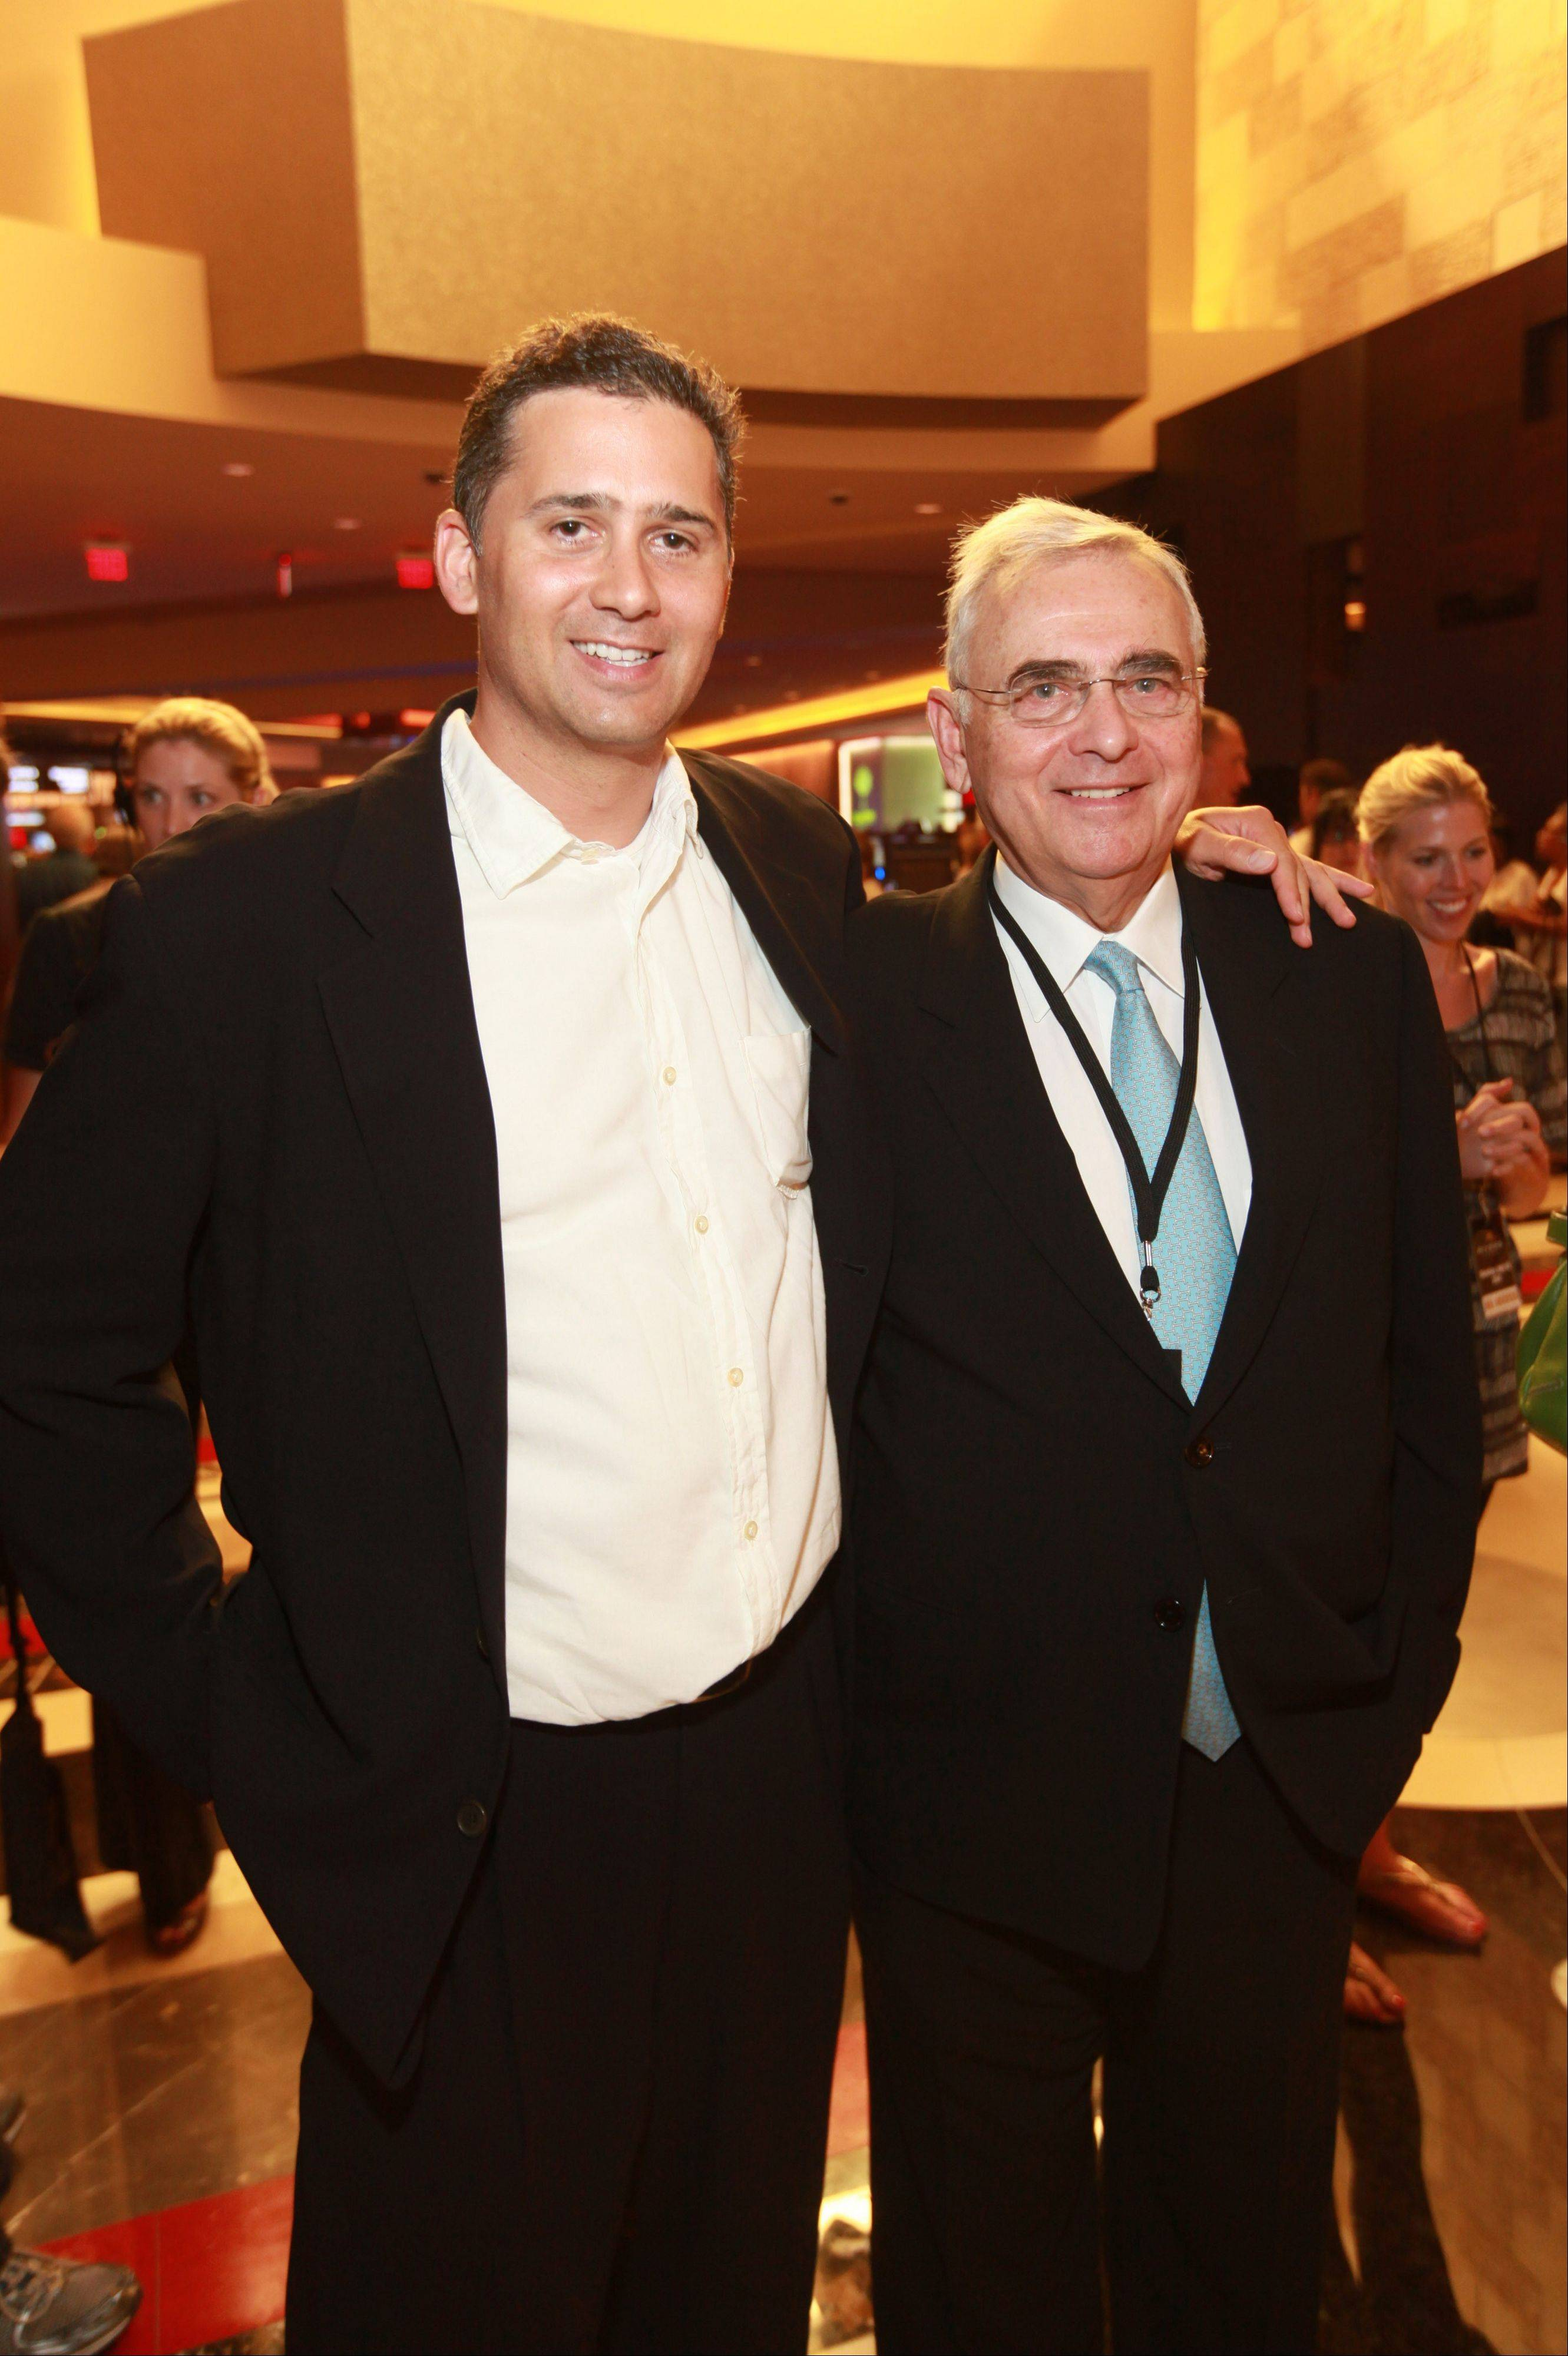 Andy Bluhm, left, enjoys opening festivities at Des Plaines' new Rivers Casino with his father, Neil Bluhm, chairman of Midwest Gaming & Entertainment.